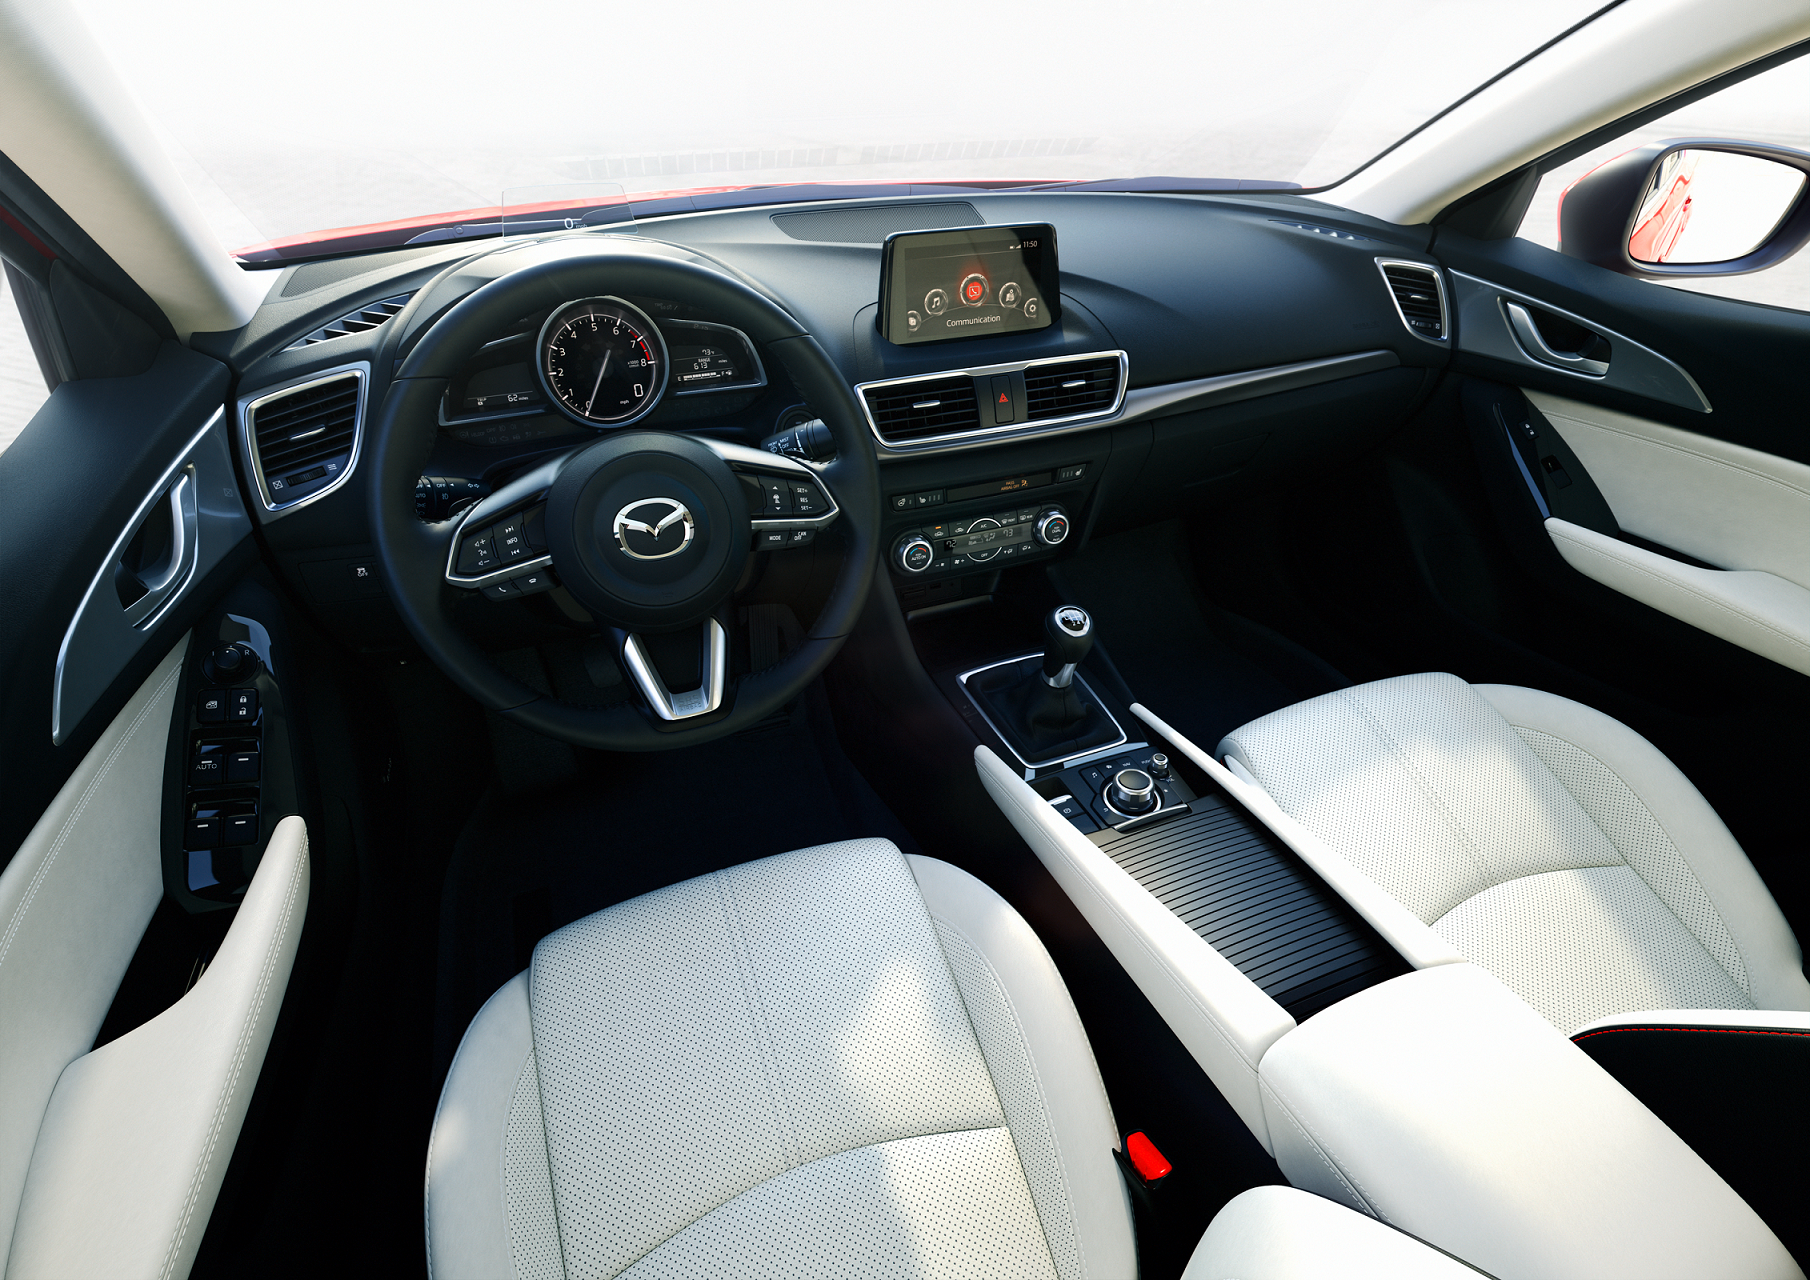 Awesome Mazda 3 Interior 2017 And Review In 2020 Interior Design Colleges Mazda Vinyl Shutters